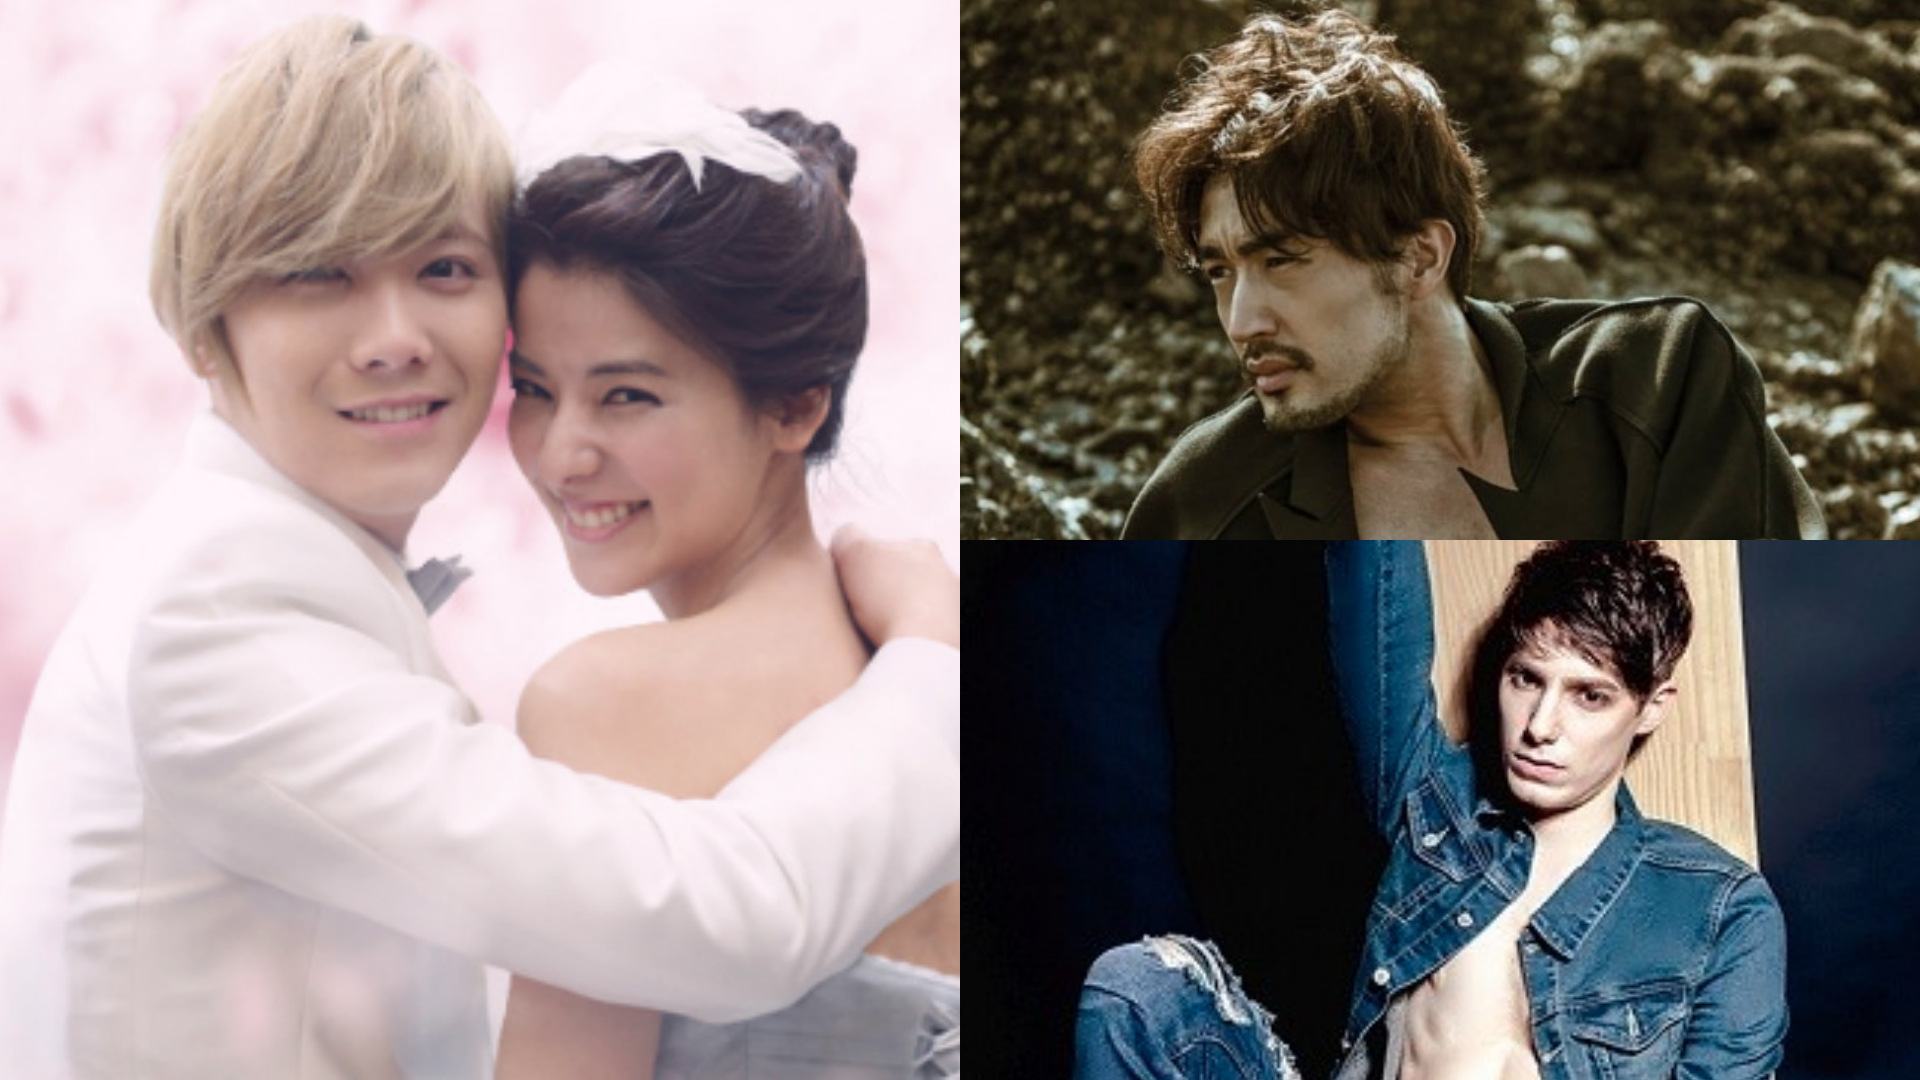 Fujii mina and hong ki dating. 5 warning signs of dating violence.